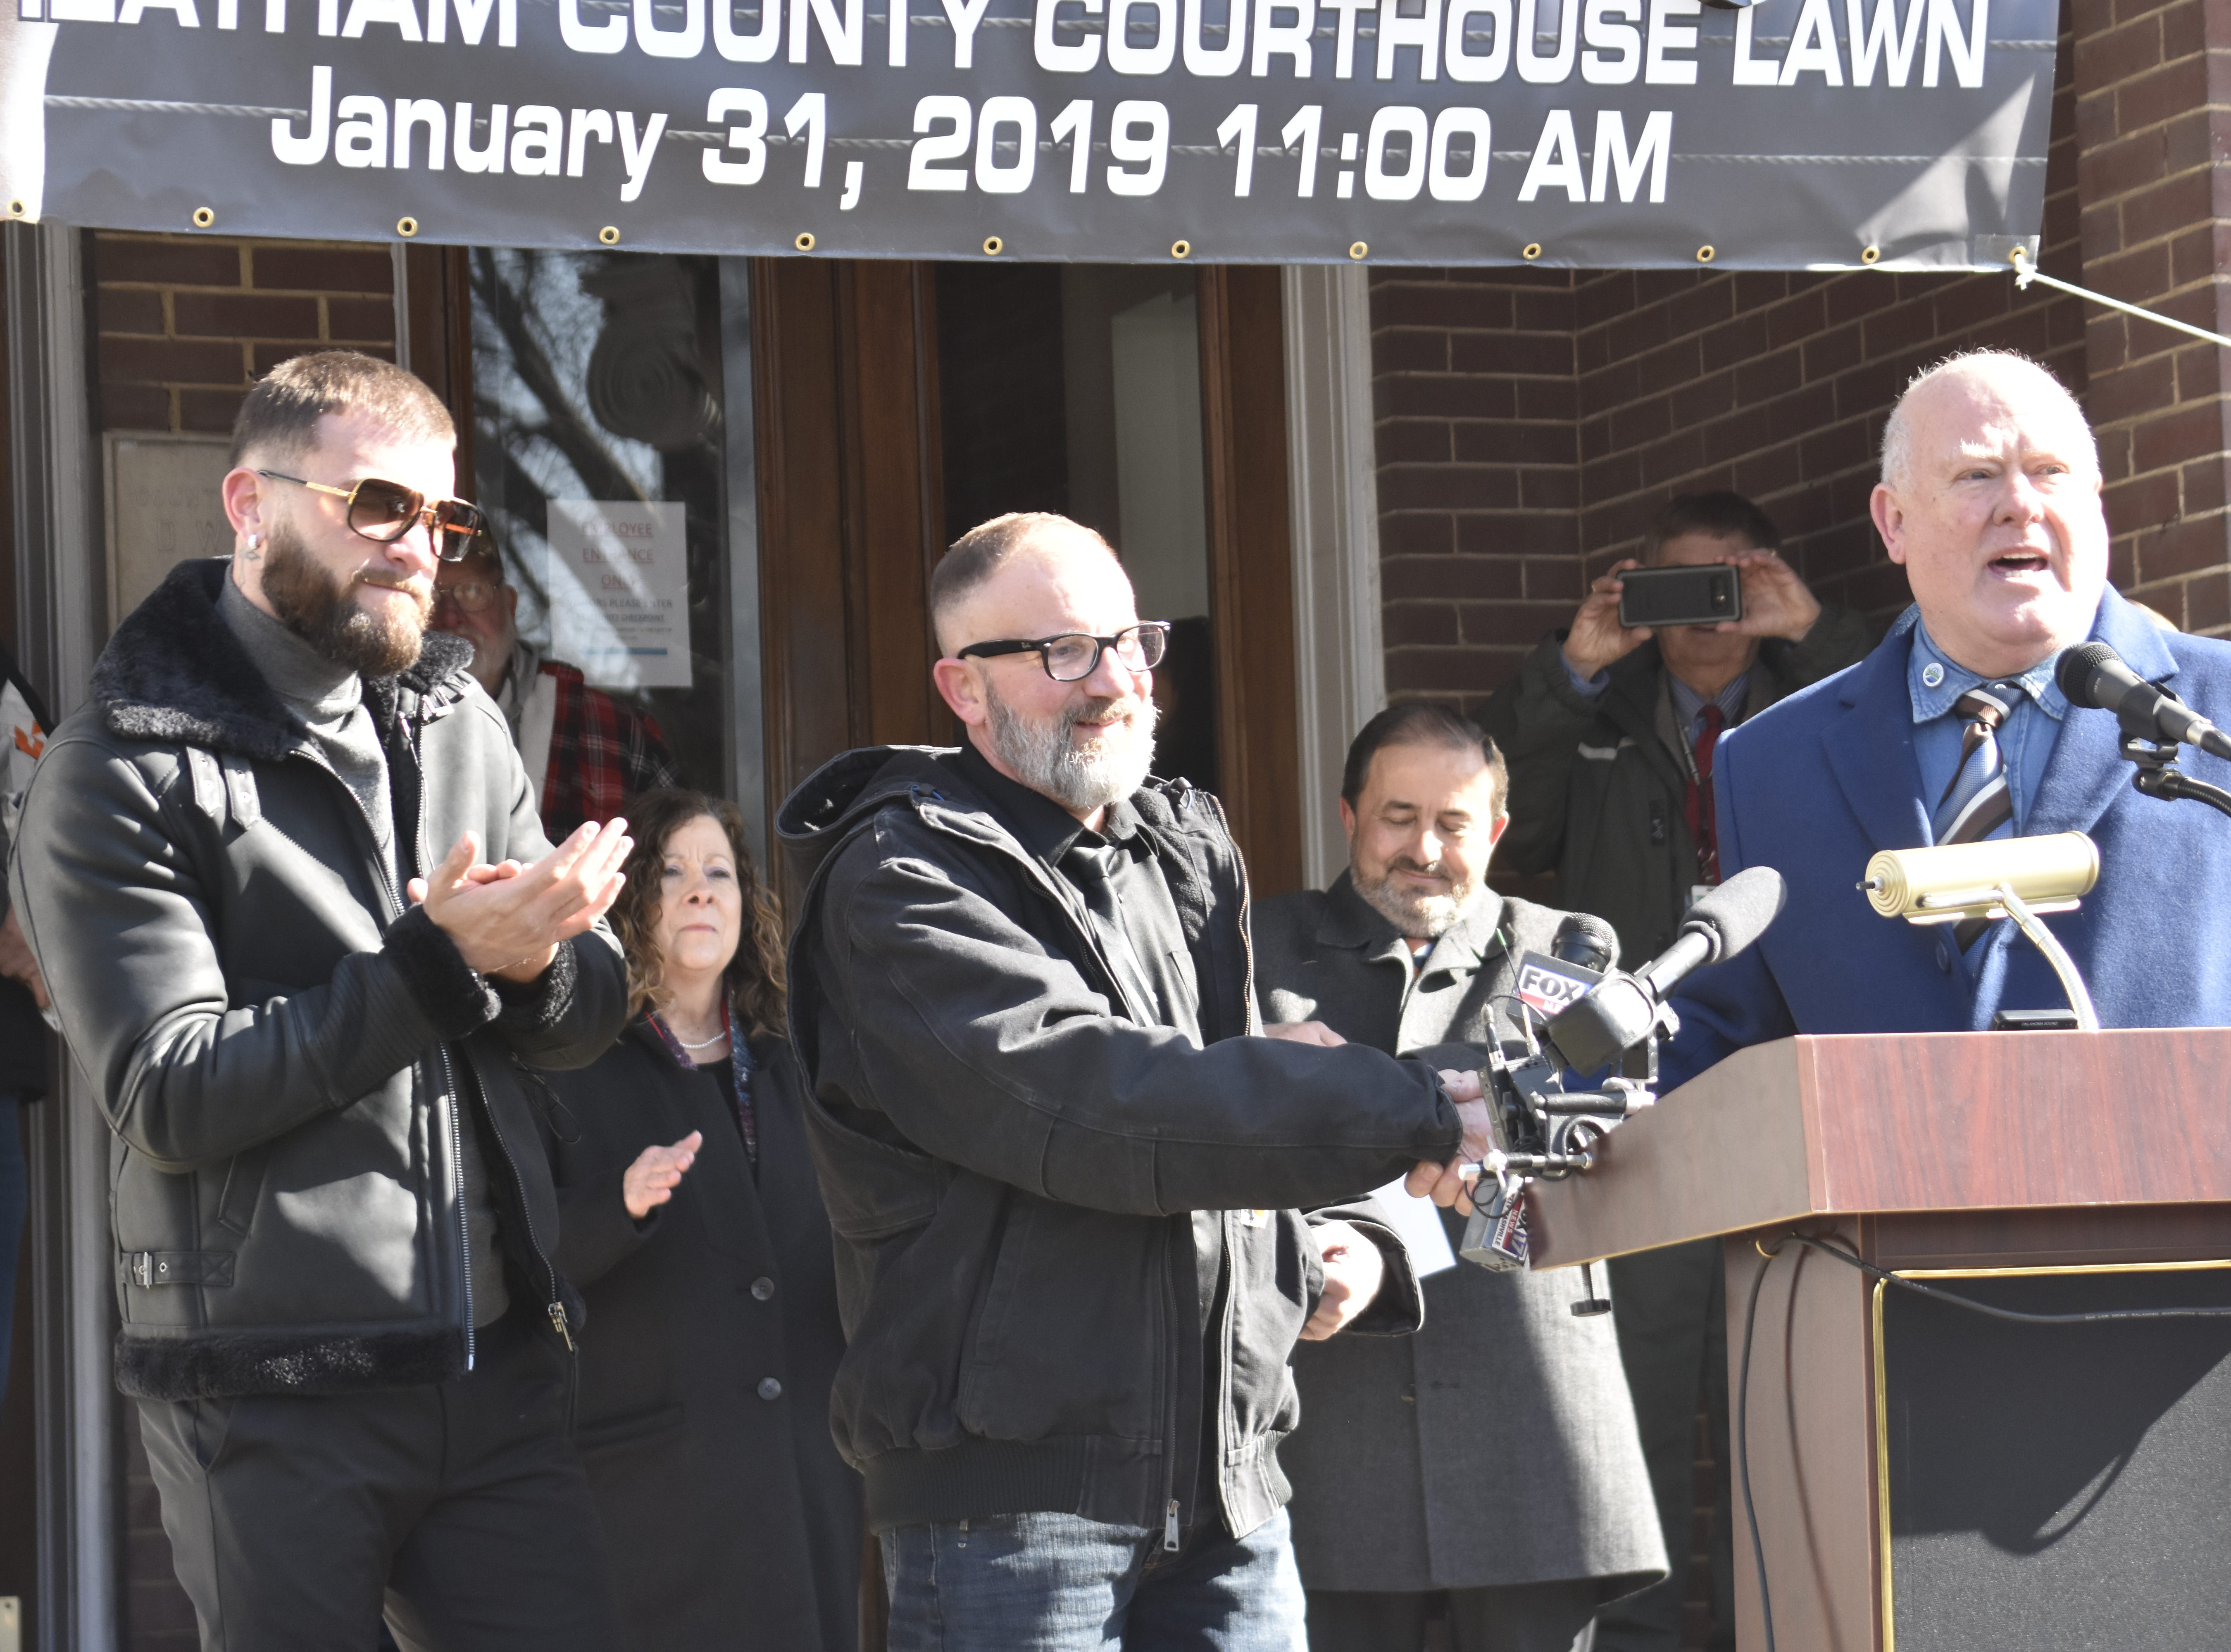 """Ashland City Mayor Steve Allen (right) recognized Richie Plant (center) and Caleb """"Sweethands"""" Plant (left) at the Cheatham County Courthouse on Thursday, Jan. 31."""